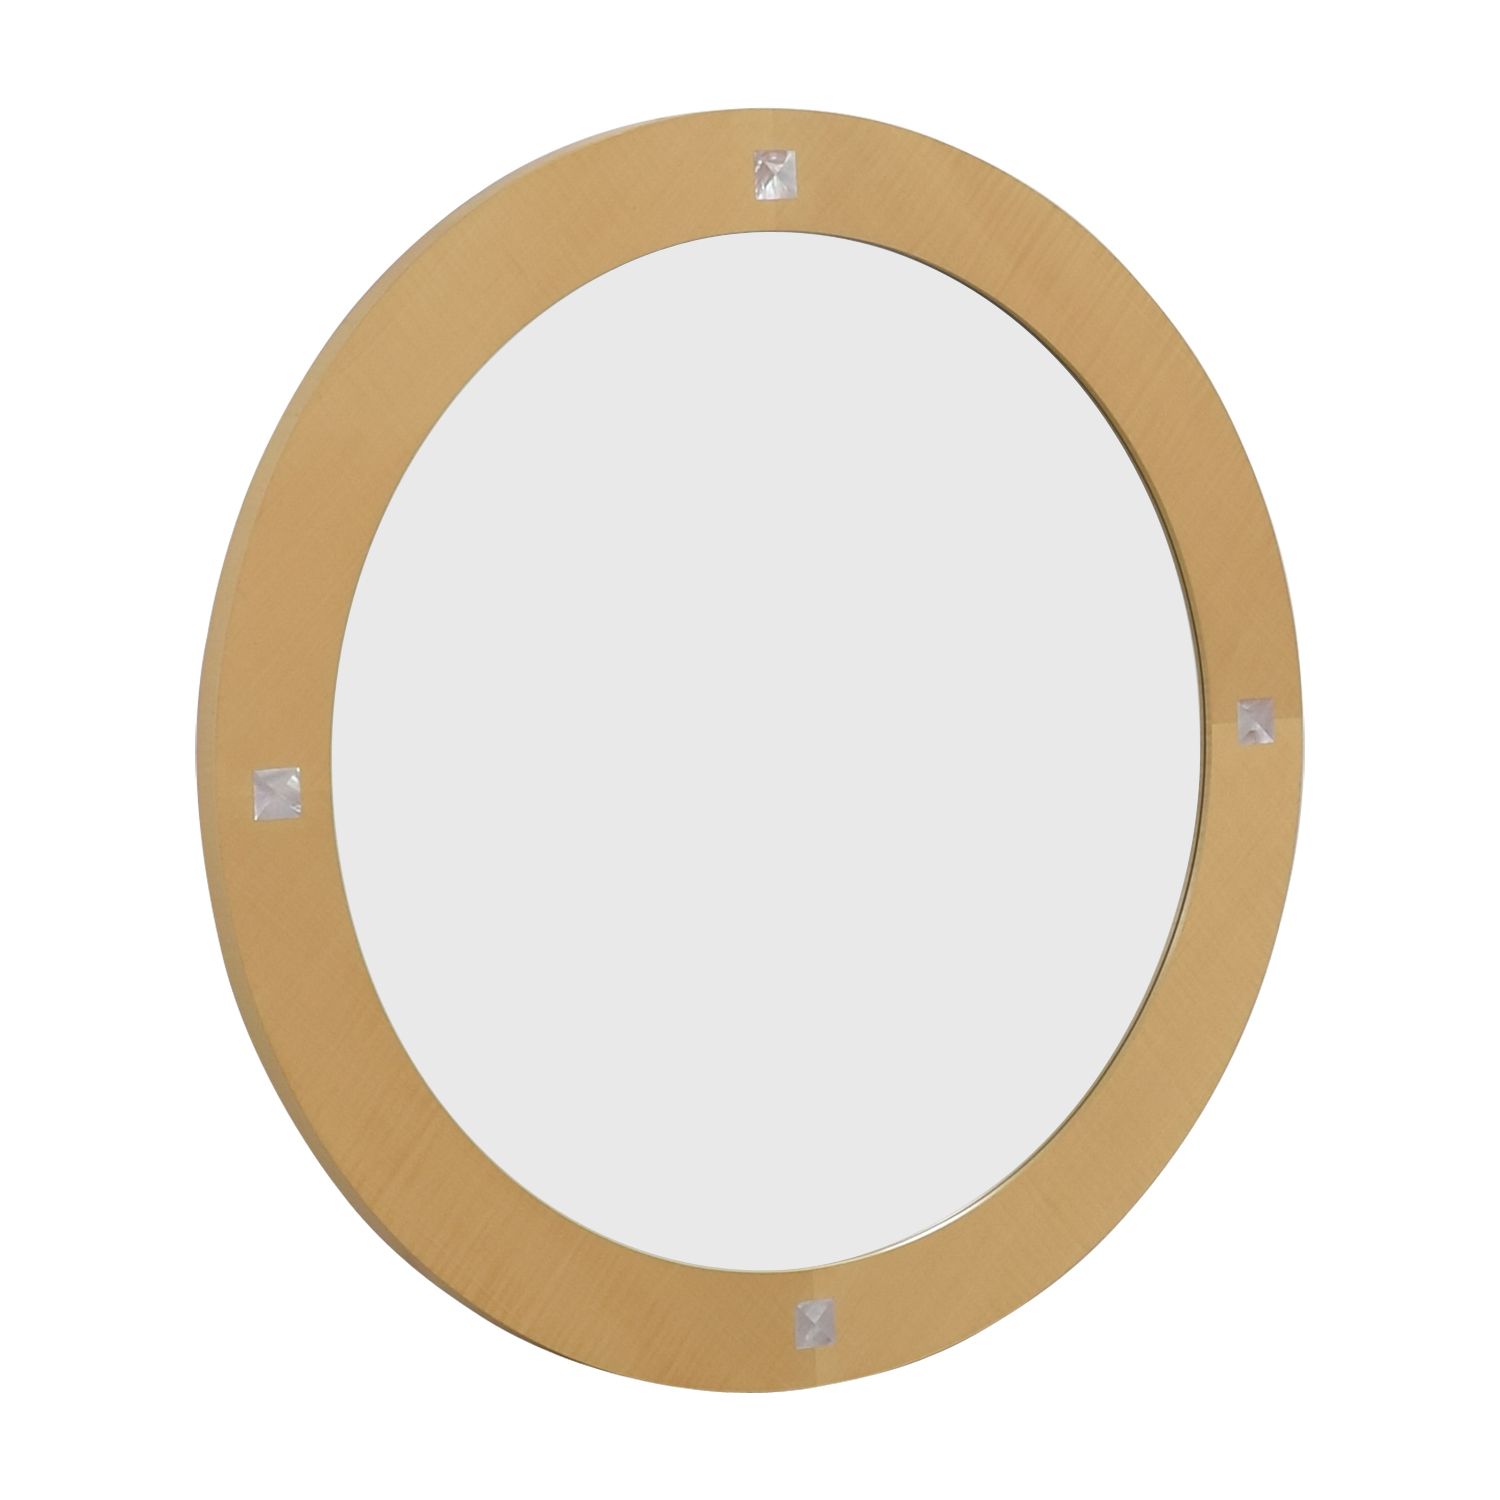 Round Natural Wood Wall Mirror coupon